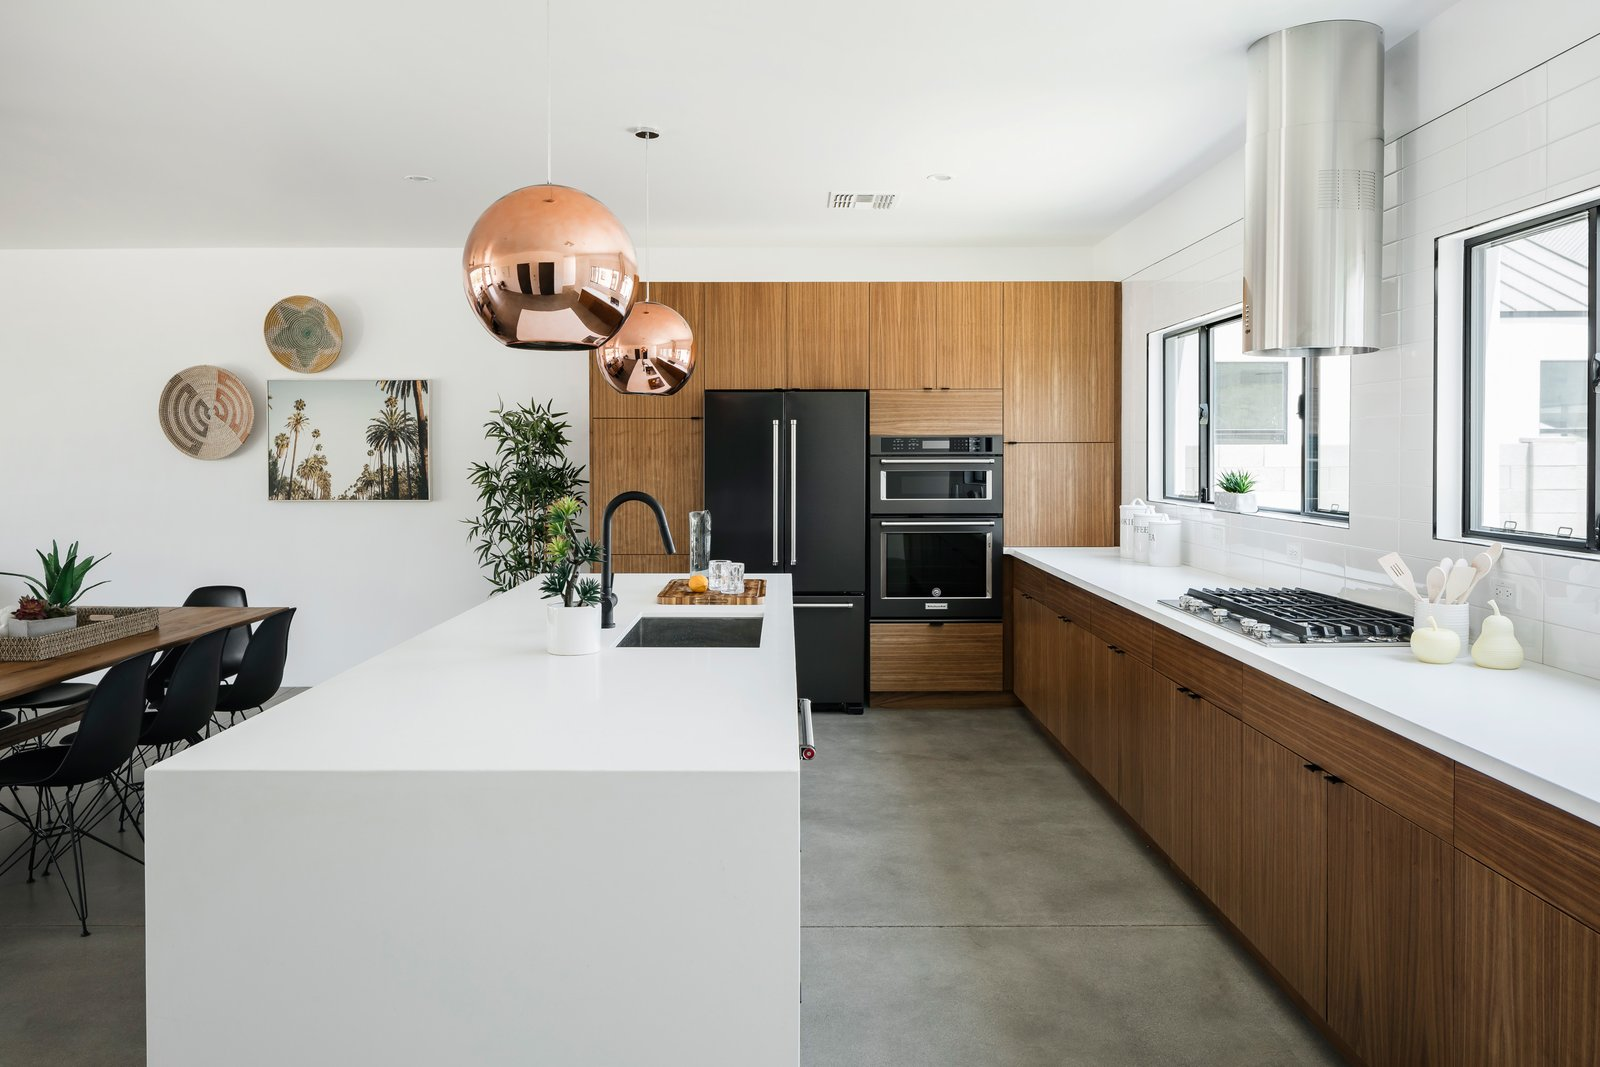 Kitchen, Undermount Sink, Wood Cabinet, Engineered Quartz Counter, Range, Range Hood, Concrete Floor, and Pendant Lighting  Photo 3 of 13 in In Arizona, a Modern Cube and Tumbledown 1930s Shack Make an Unlikely Couple